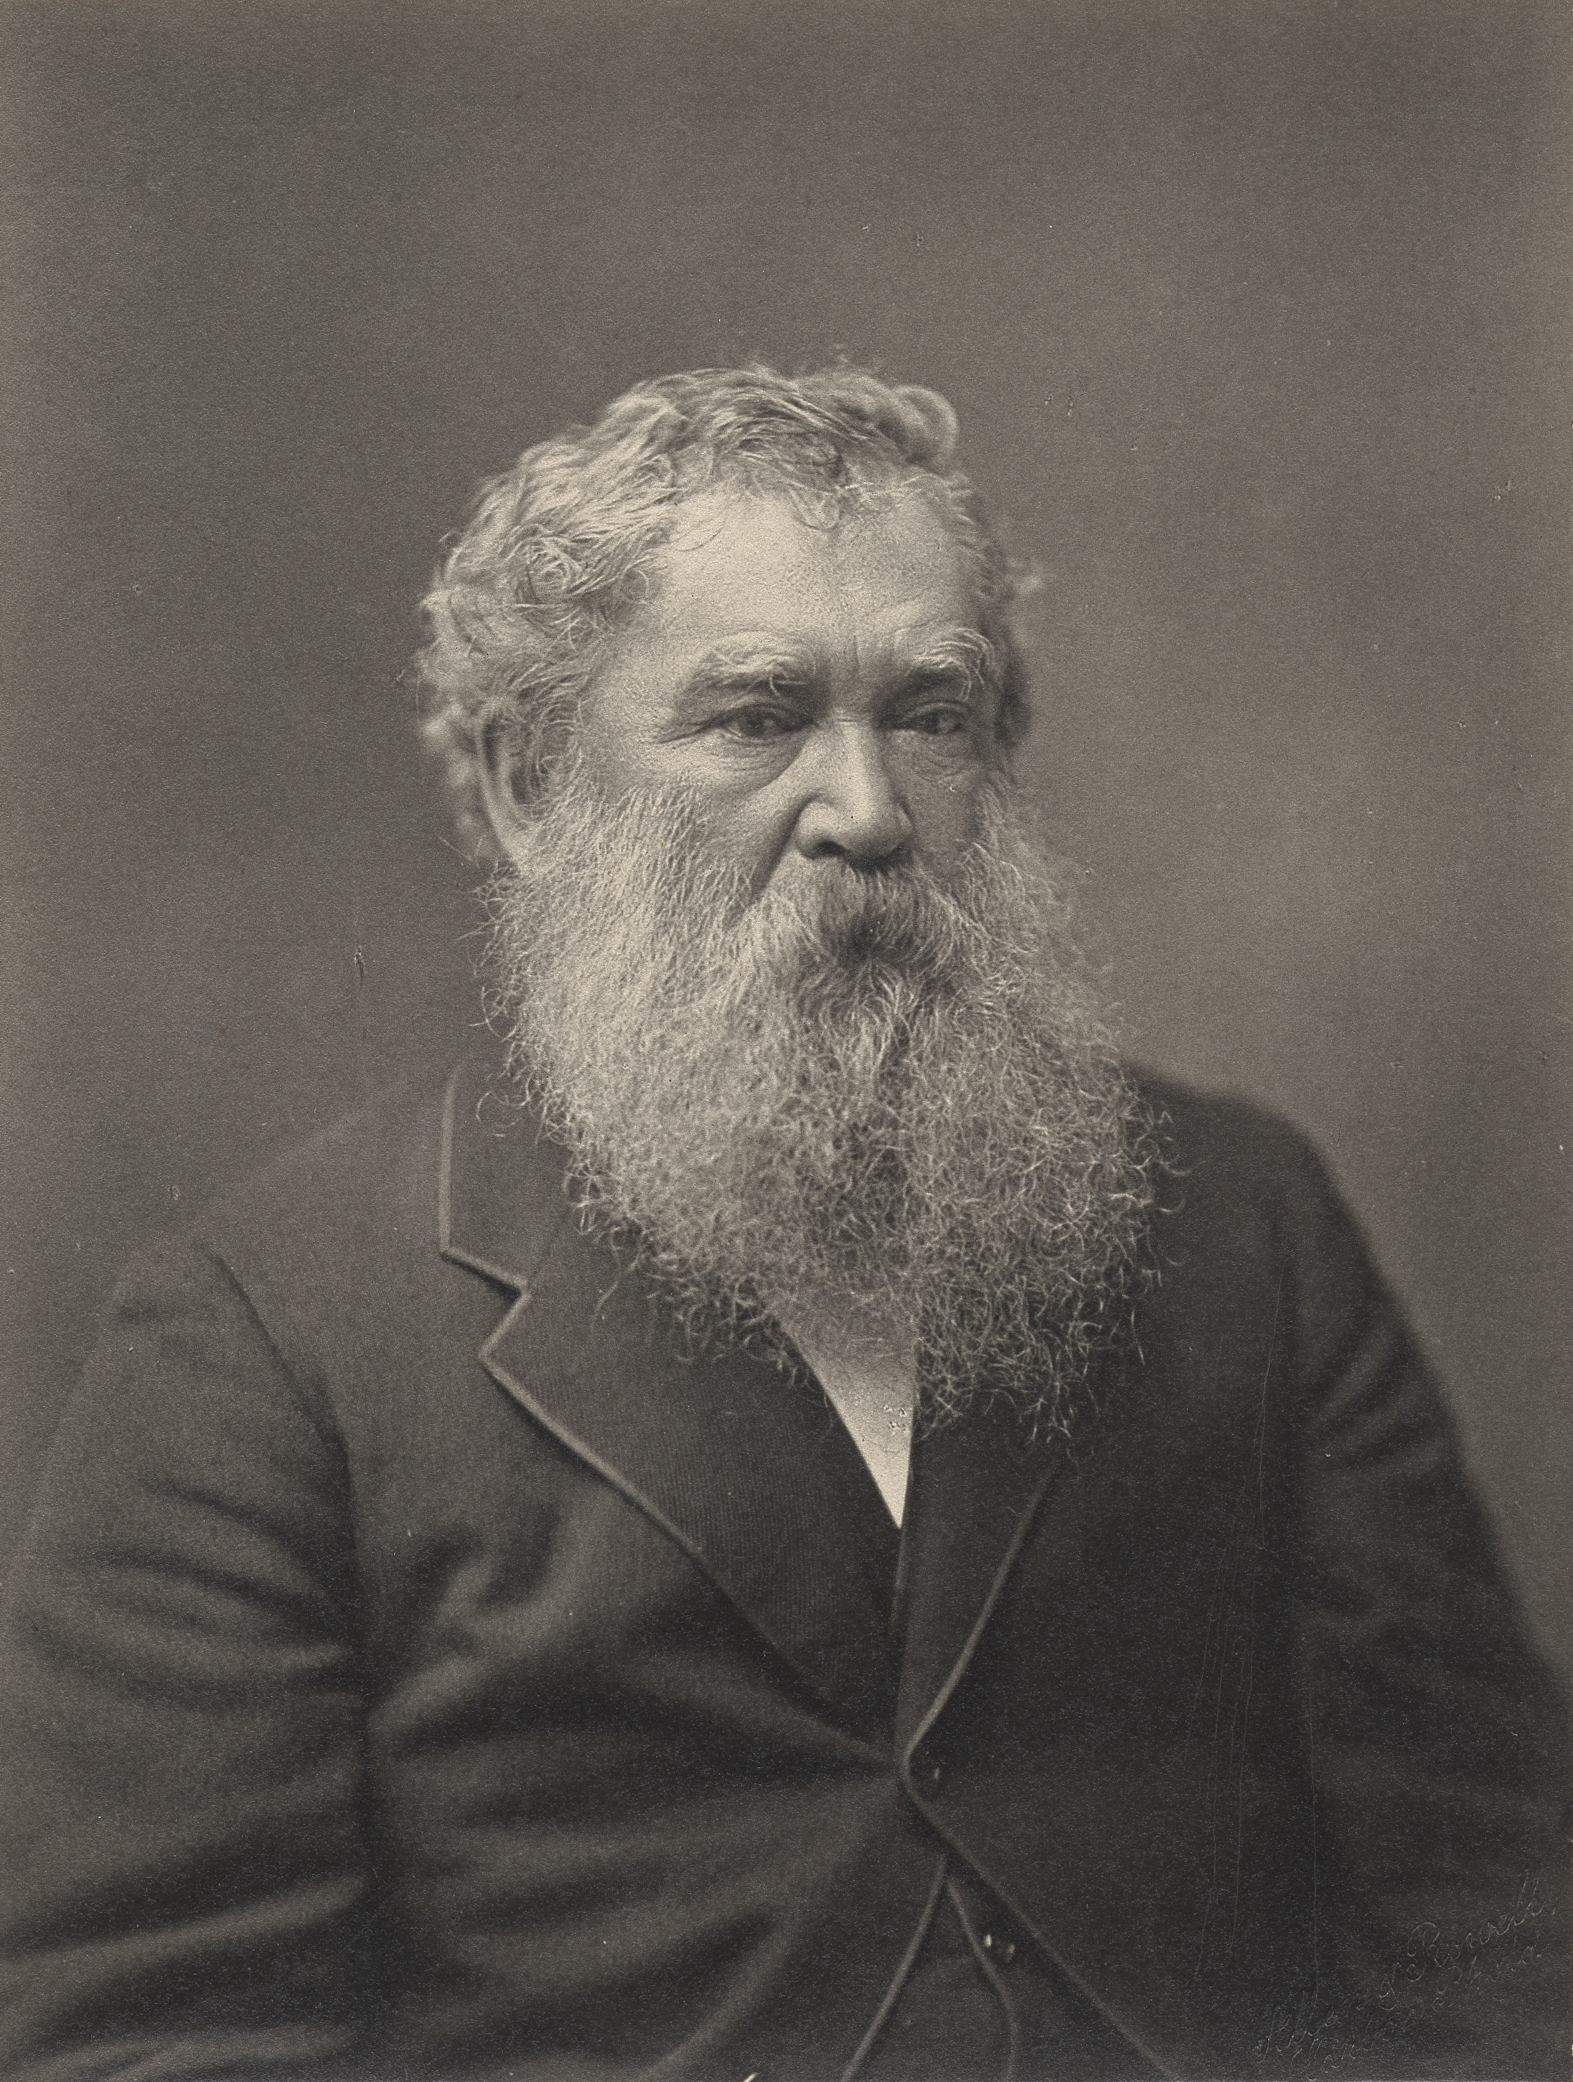 Image of George Fuller from Wikidata